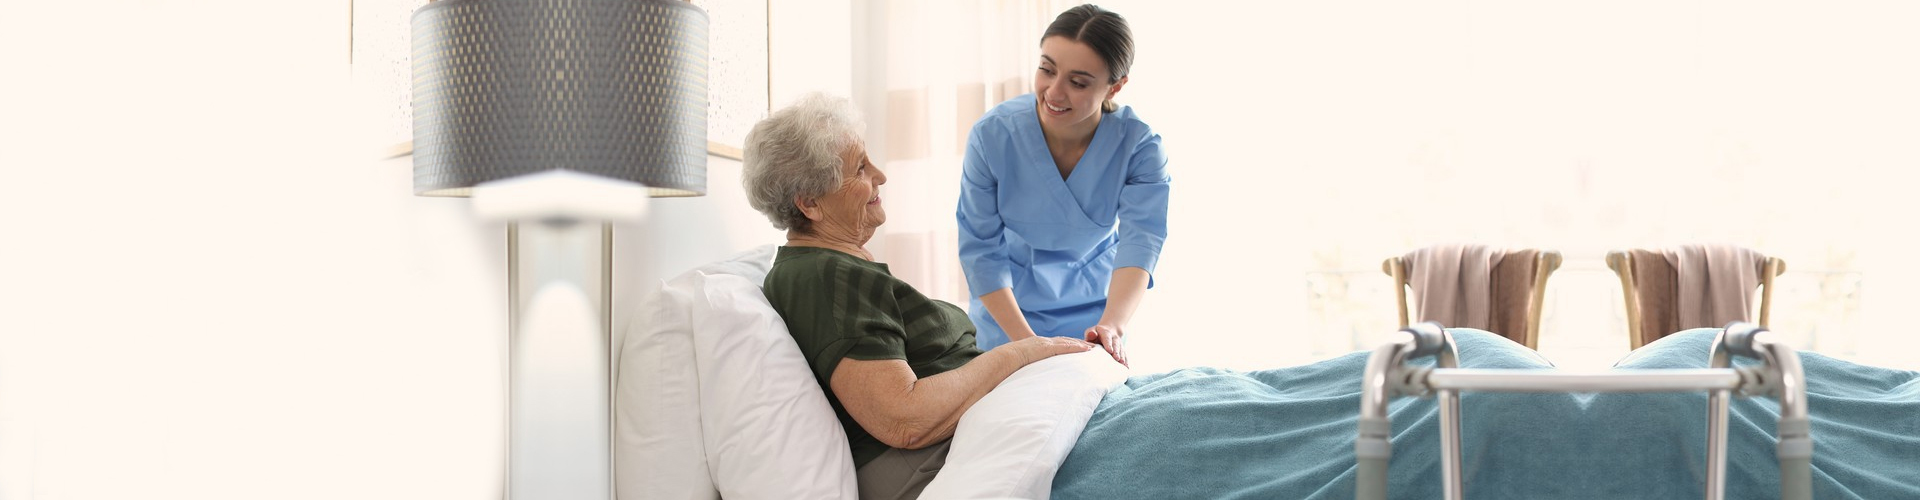 a caregiver attending to her patient